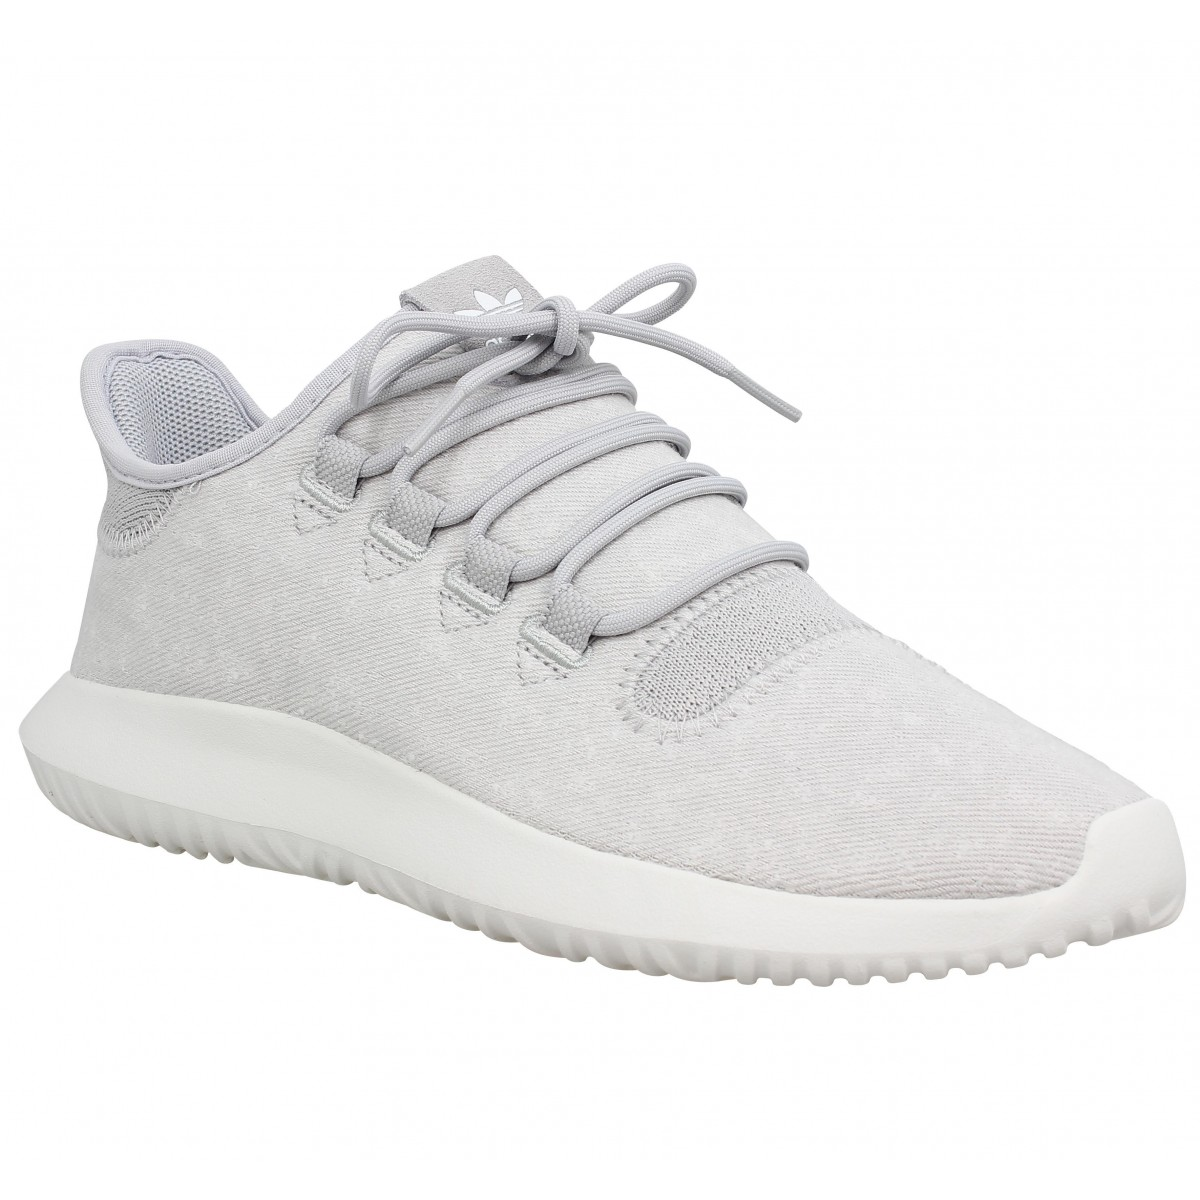 Baskets ADIDAS Tubular Shadow toile Homme Gris